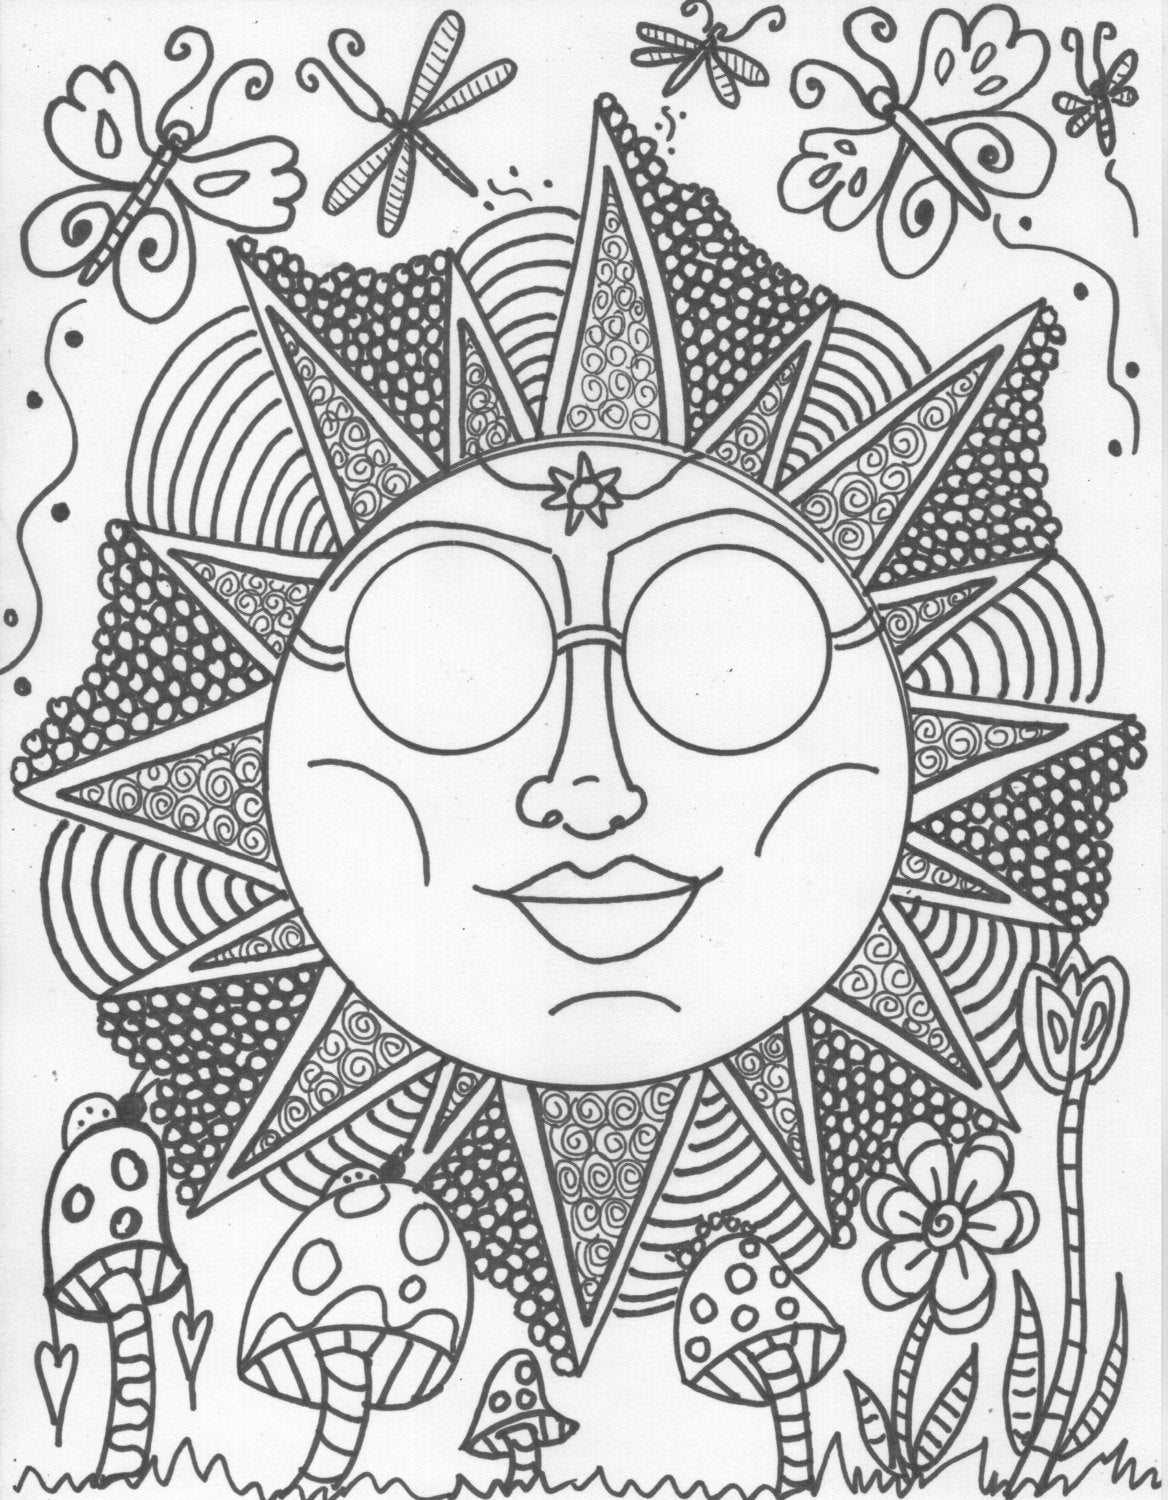 hippie girl coloring pages hippie custom coloring book coloring book pages by pages coloring hippie girl